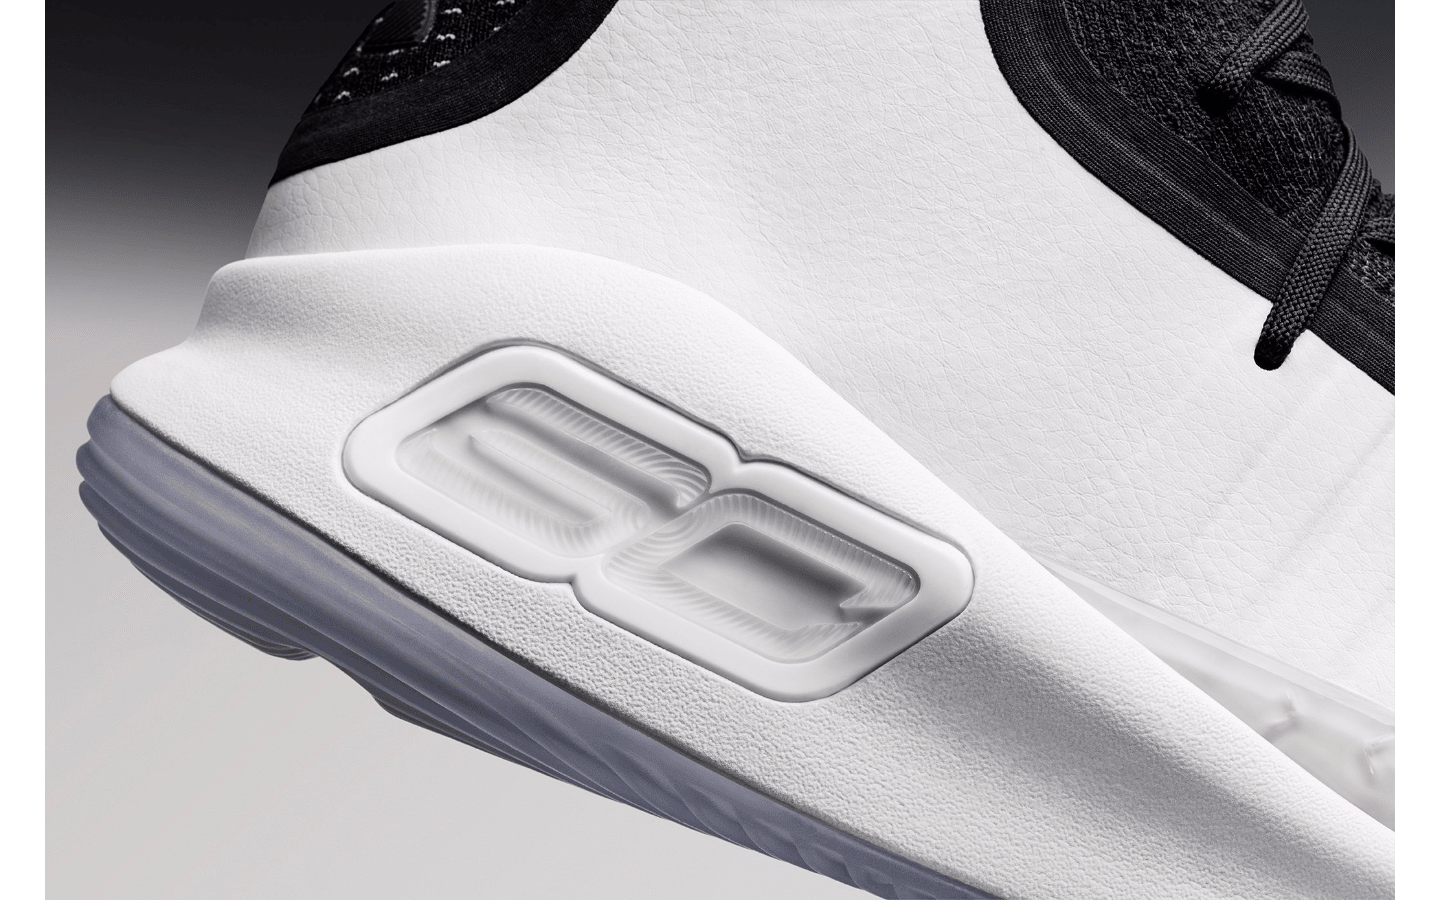 Under Armour Curry 4 Black/White 1298306-007 (Detail 1)